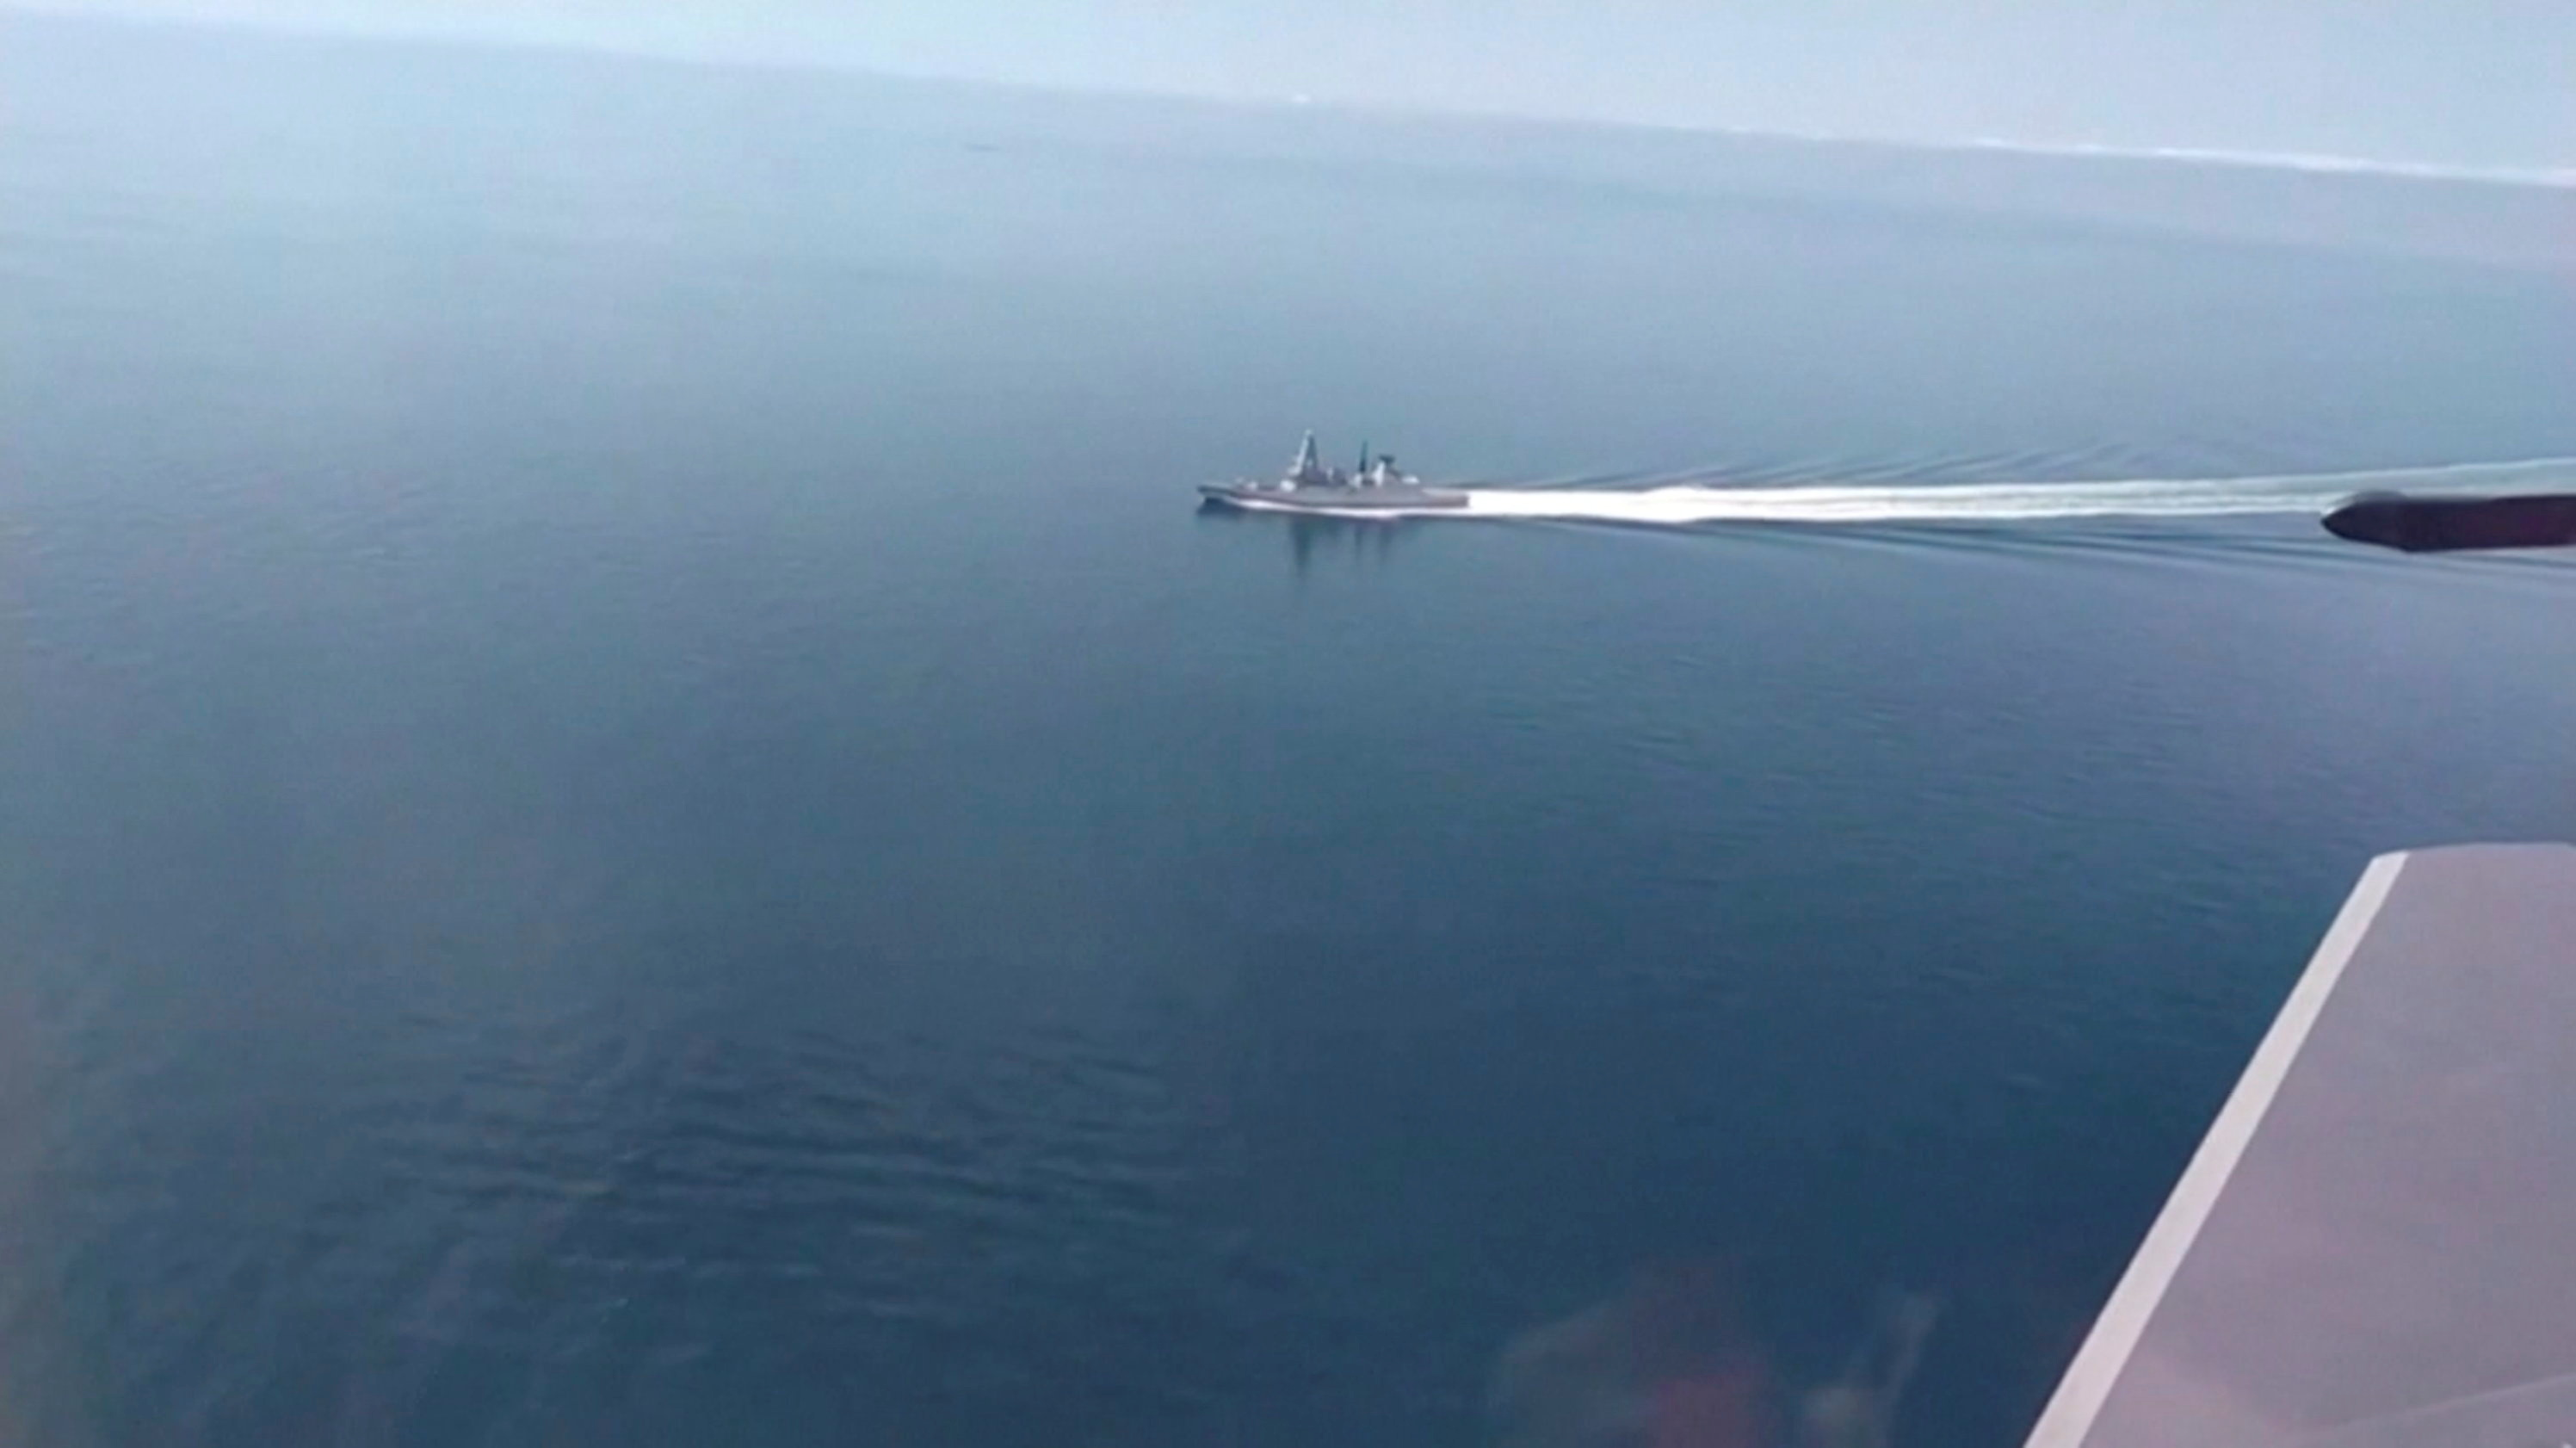 A still image taken from a video released by Russia's Defence Ministry allegedly shows British Royal Navy's Type 45 destroyer HMS Defender filmed from a Russian military aircraft in the Black Sea, June 23, 2021. Ministry of Defence of the Russian Federation/Handout via REUTERS